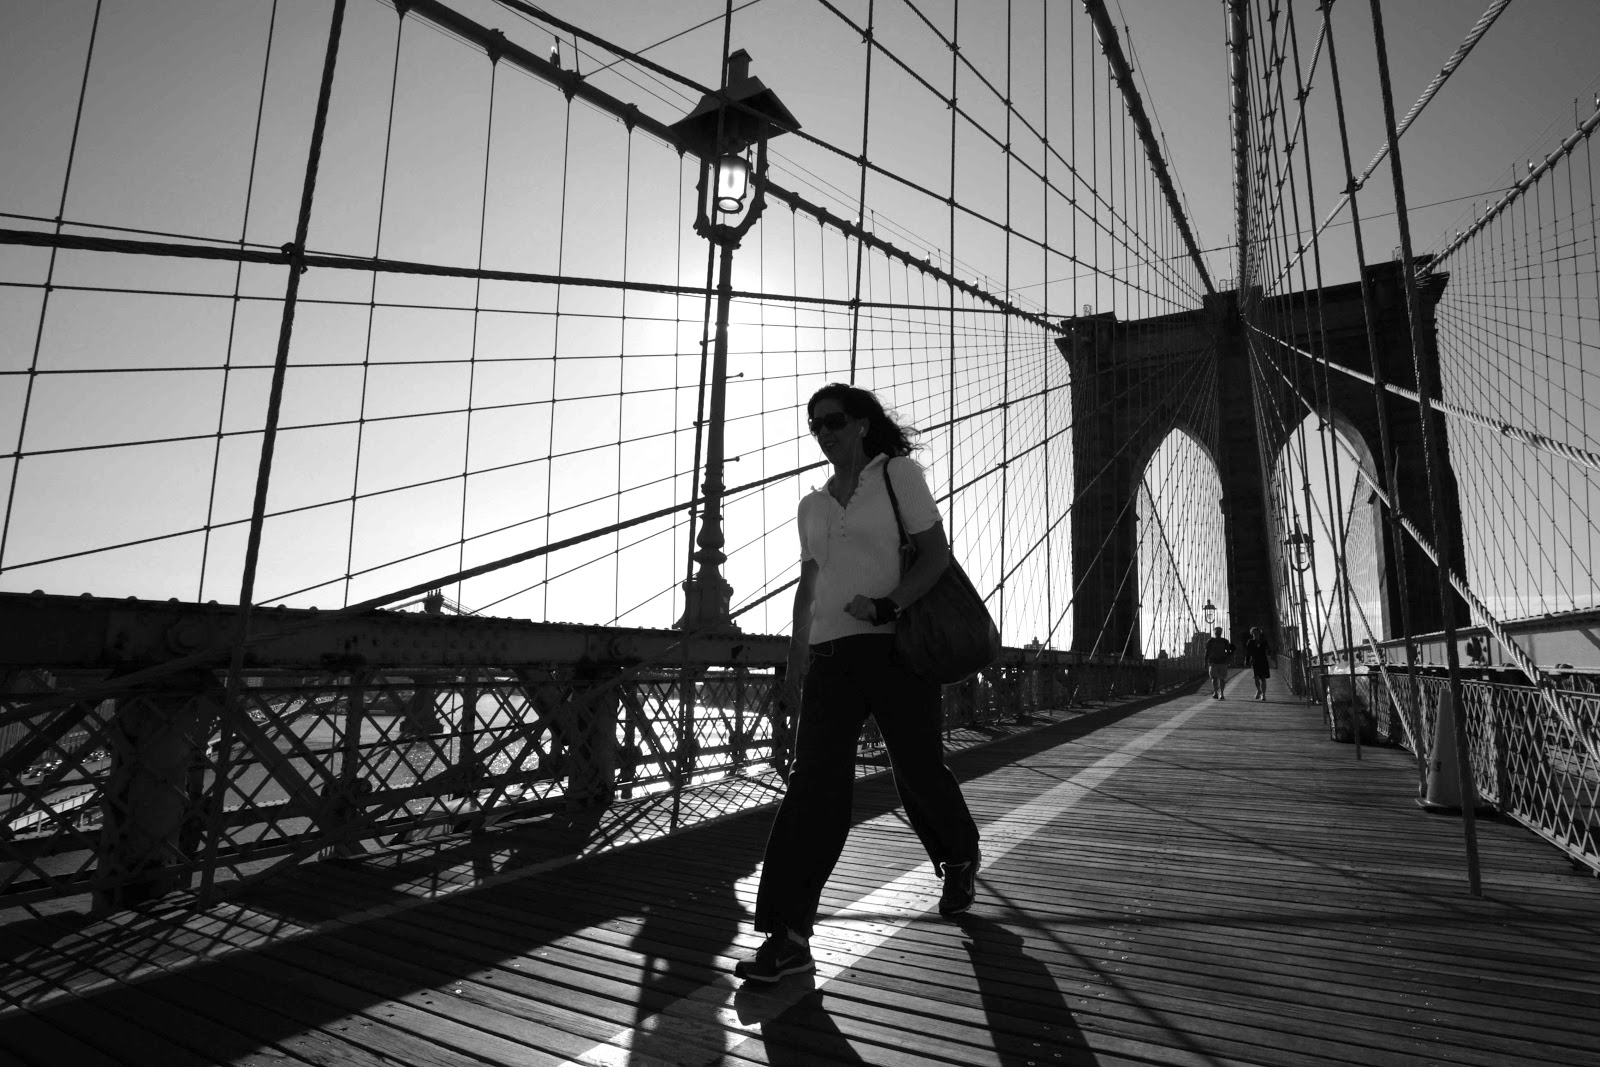 New york city bridge black and white photography